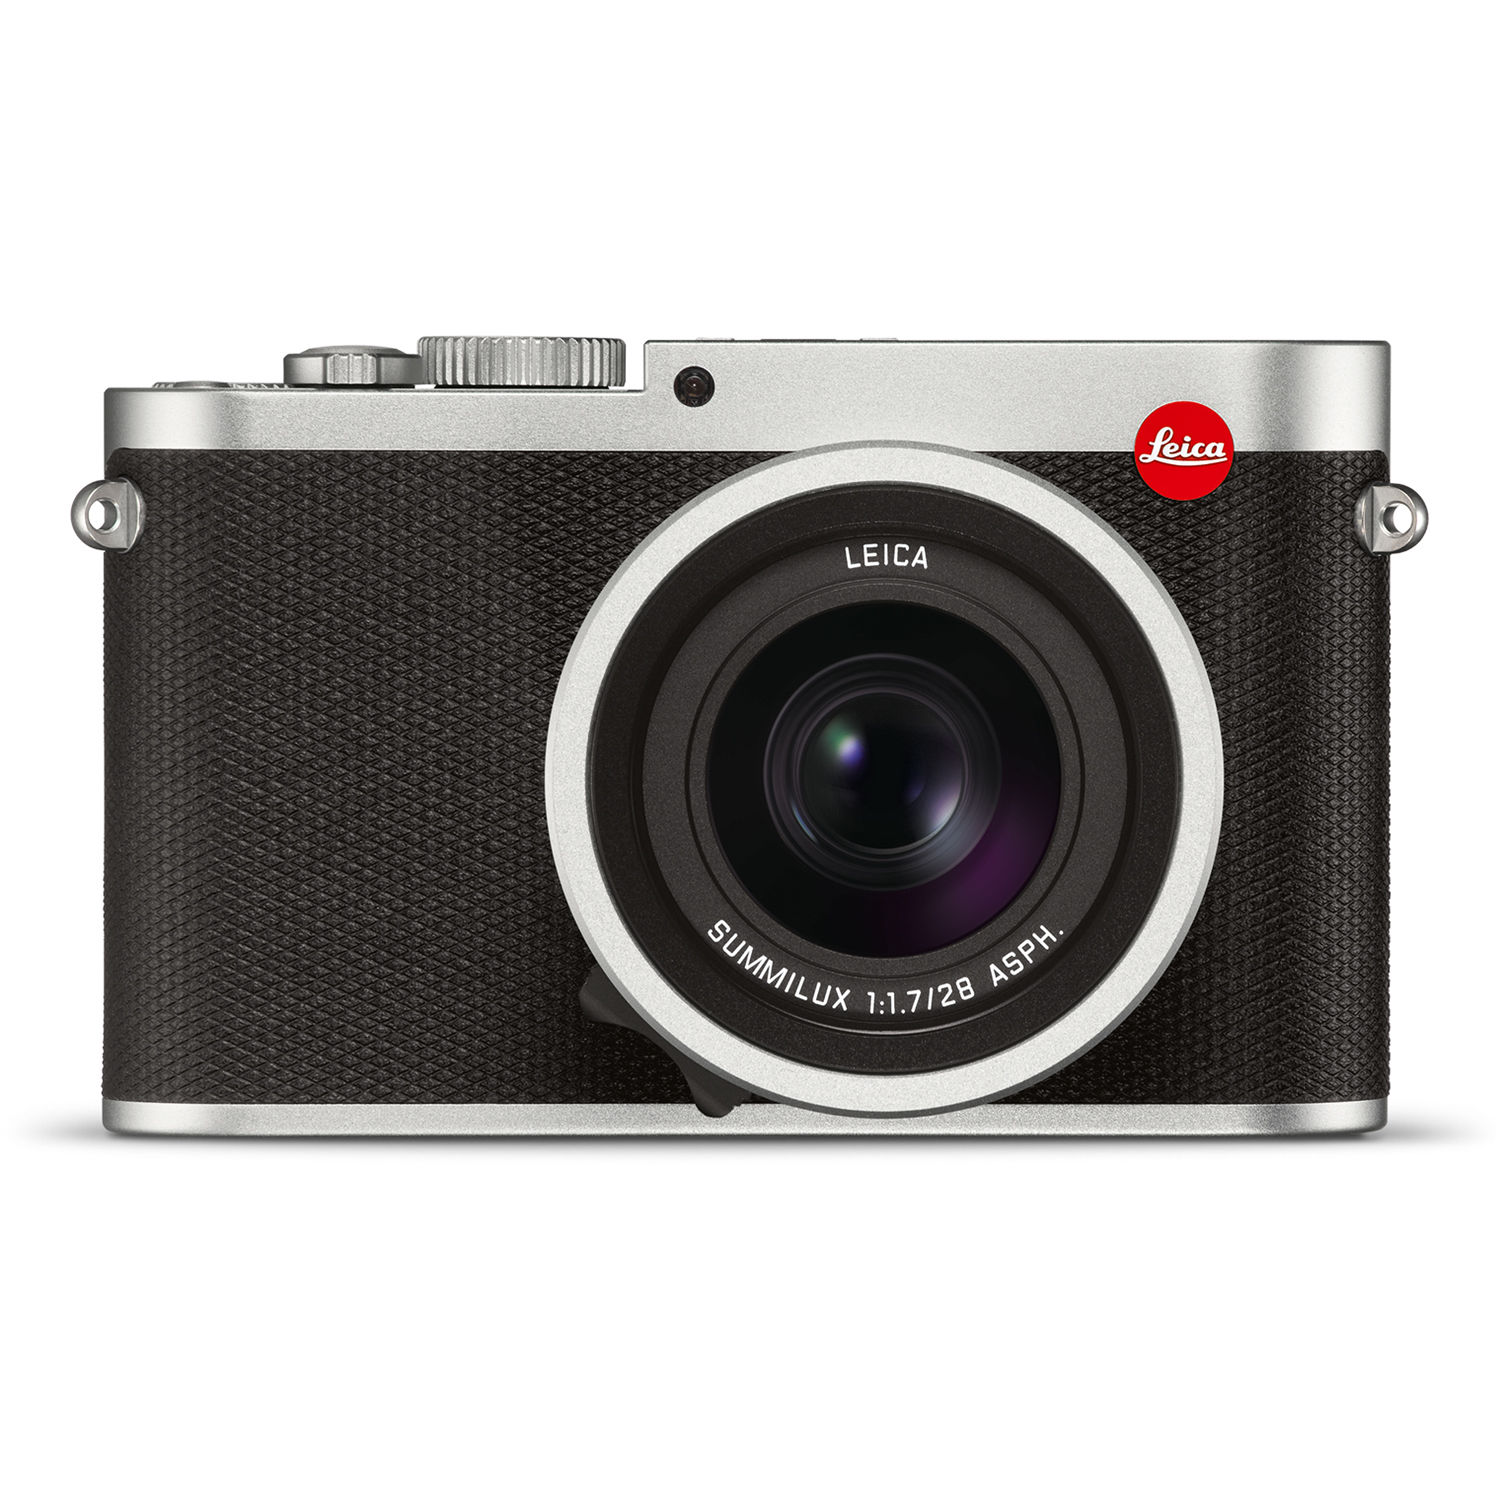 Leica Q (Typ 116) Digital Camera (Silver Anodized) by Leica